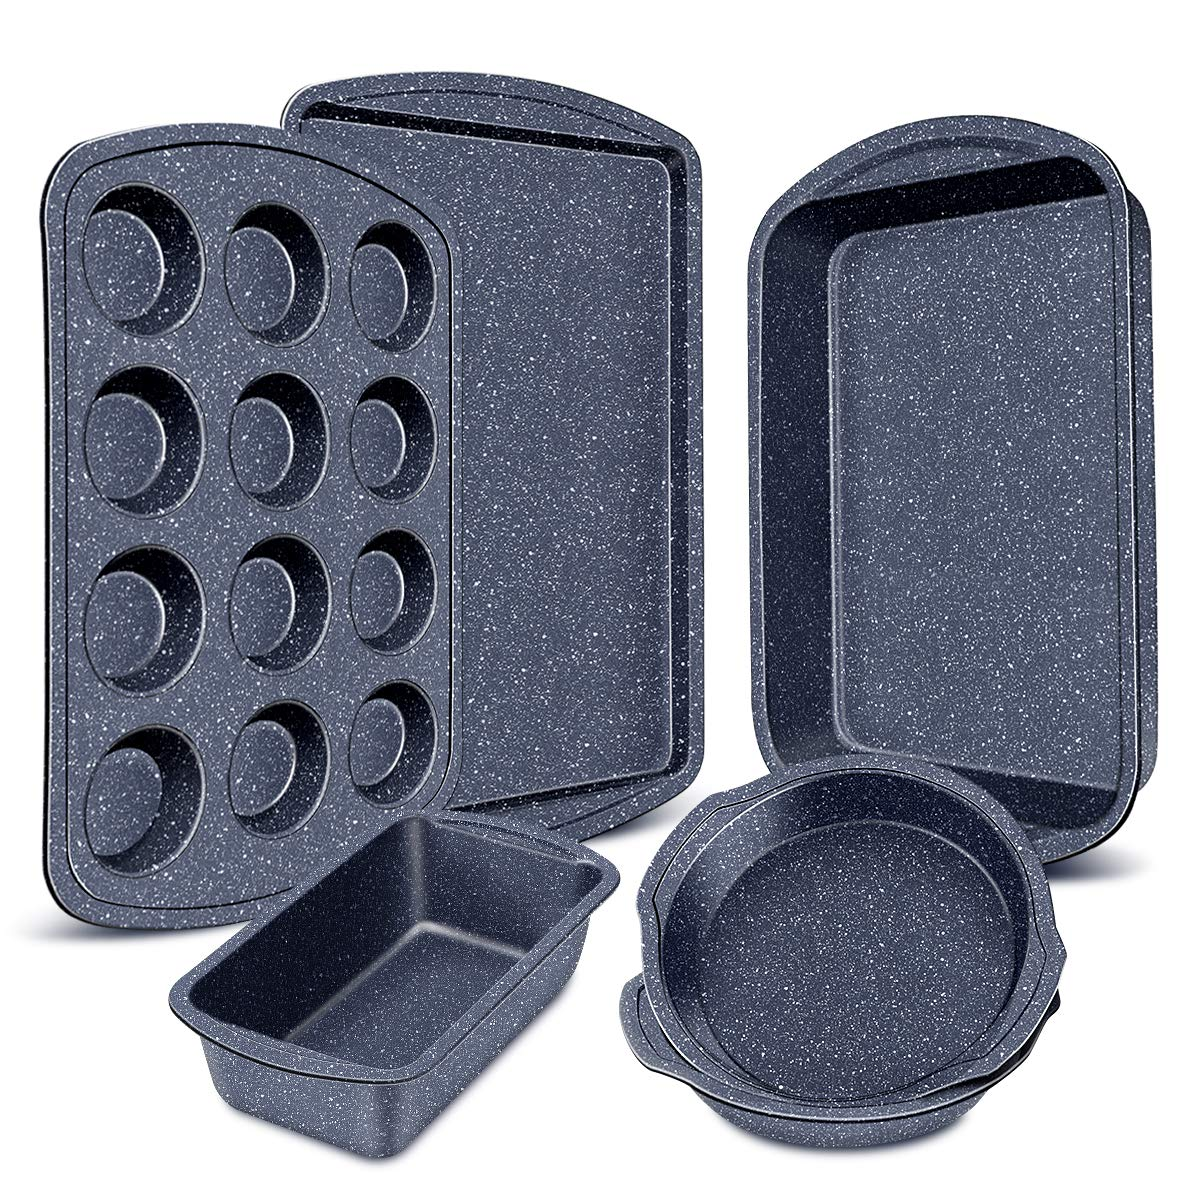 Nonstick Bakeware Set, 6-Pieces Set, Stylish and versatile Bakeware Set with 12-Cup Muffin Pan, Loaf Pan, 2 Round Cake Pans, Roasting Pan,Cookie Sheet, Kitchen Baking Tools. Navy Blue by CUSIBOX